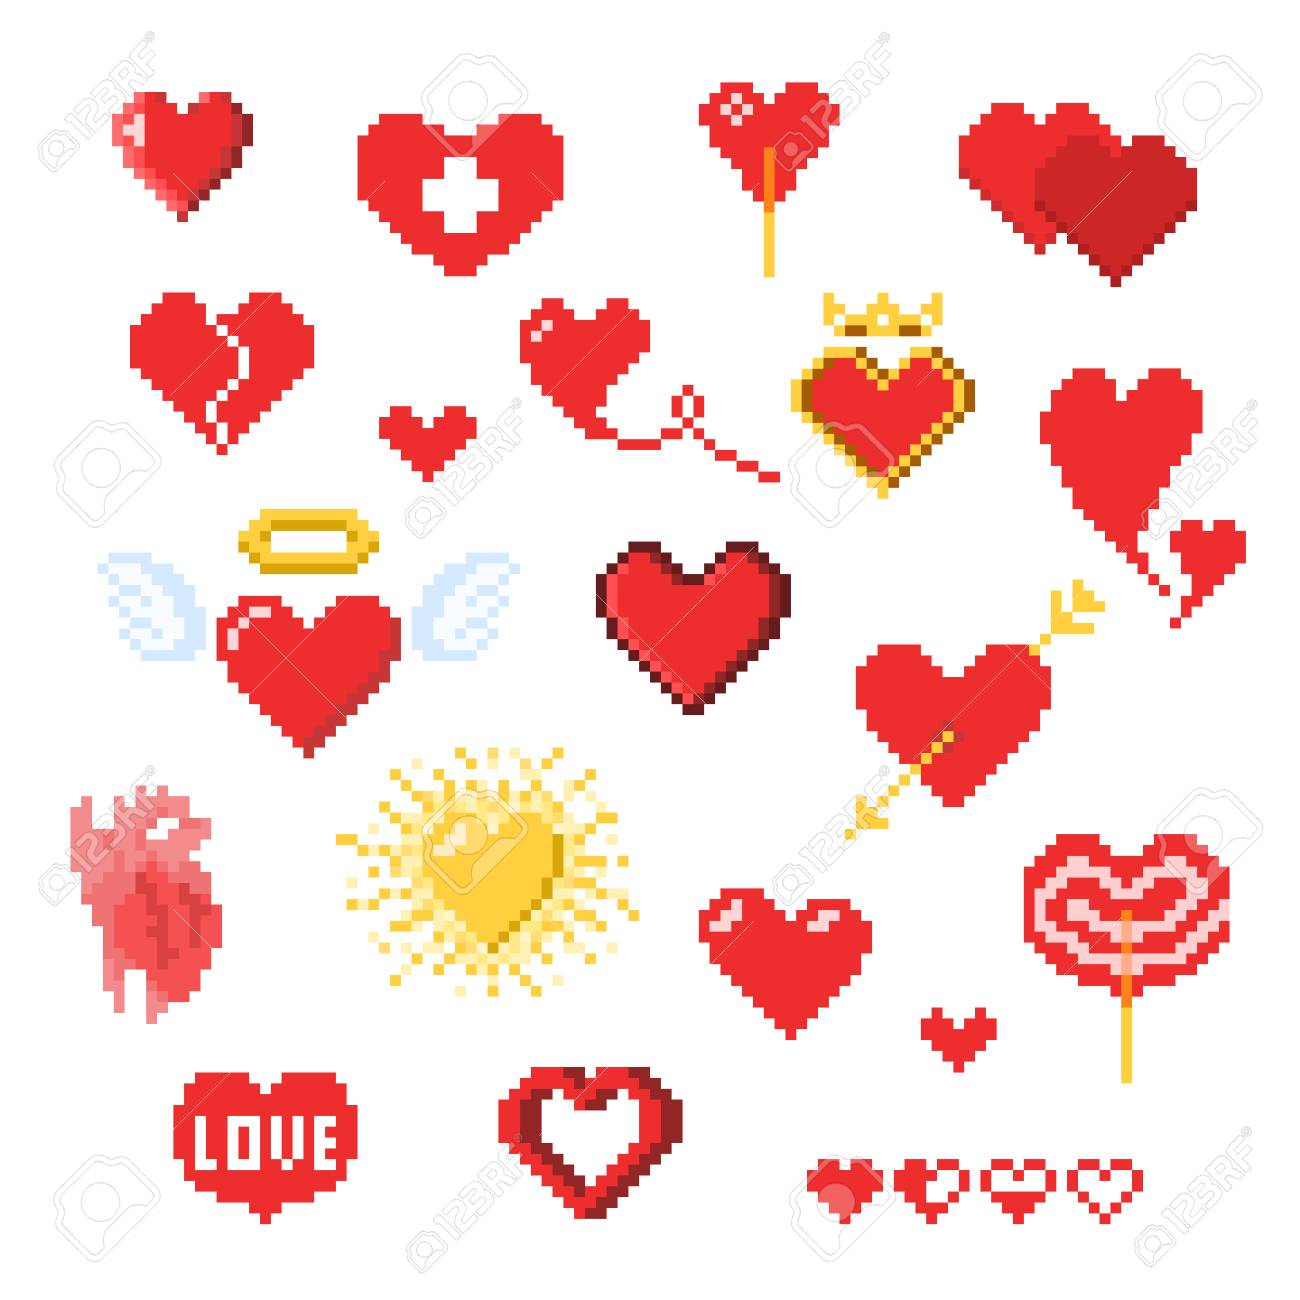 Various Pixel Heart Icons Isolated On White Valentines Day Decor Royalty Free Cliparts Vectors And Stock Illustration Image 126064710 With tenor, maker of gif keyboard, add popular pixel heart animated gifs to your conversations. various pixel heart icons isolated on white valentines day decor